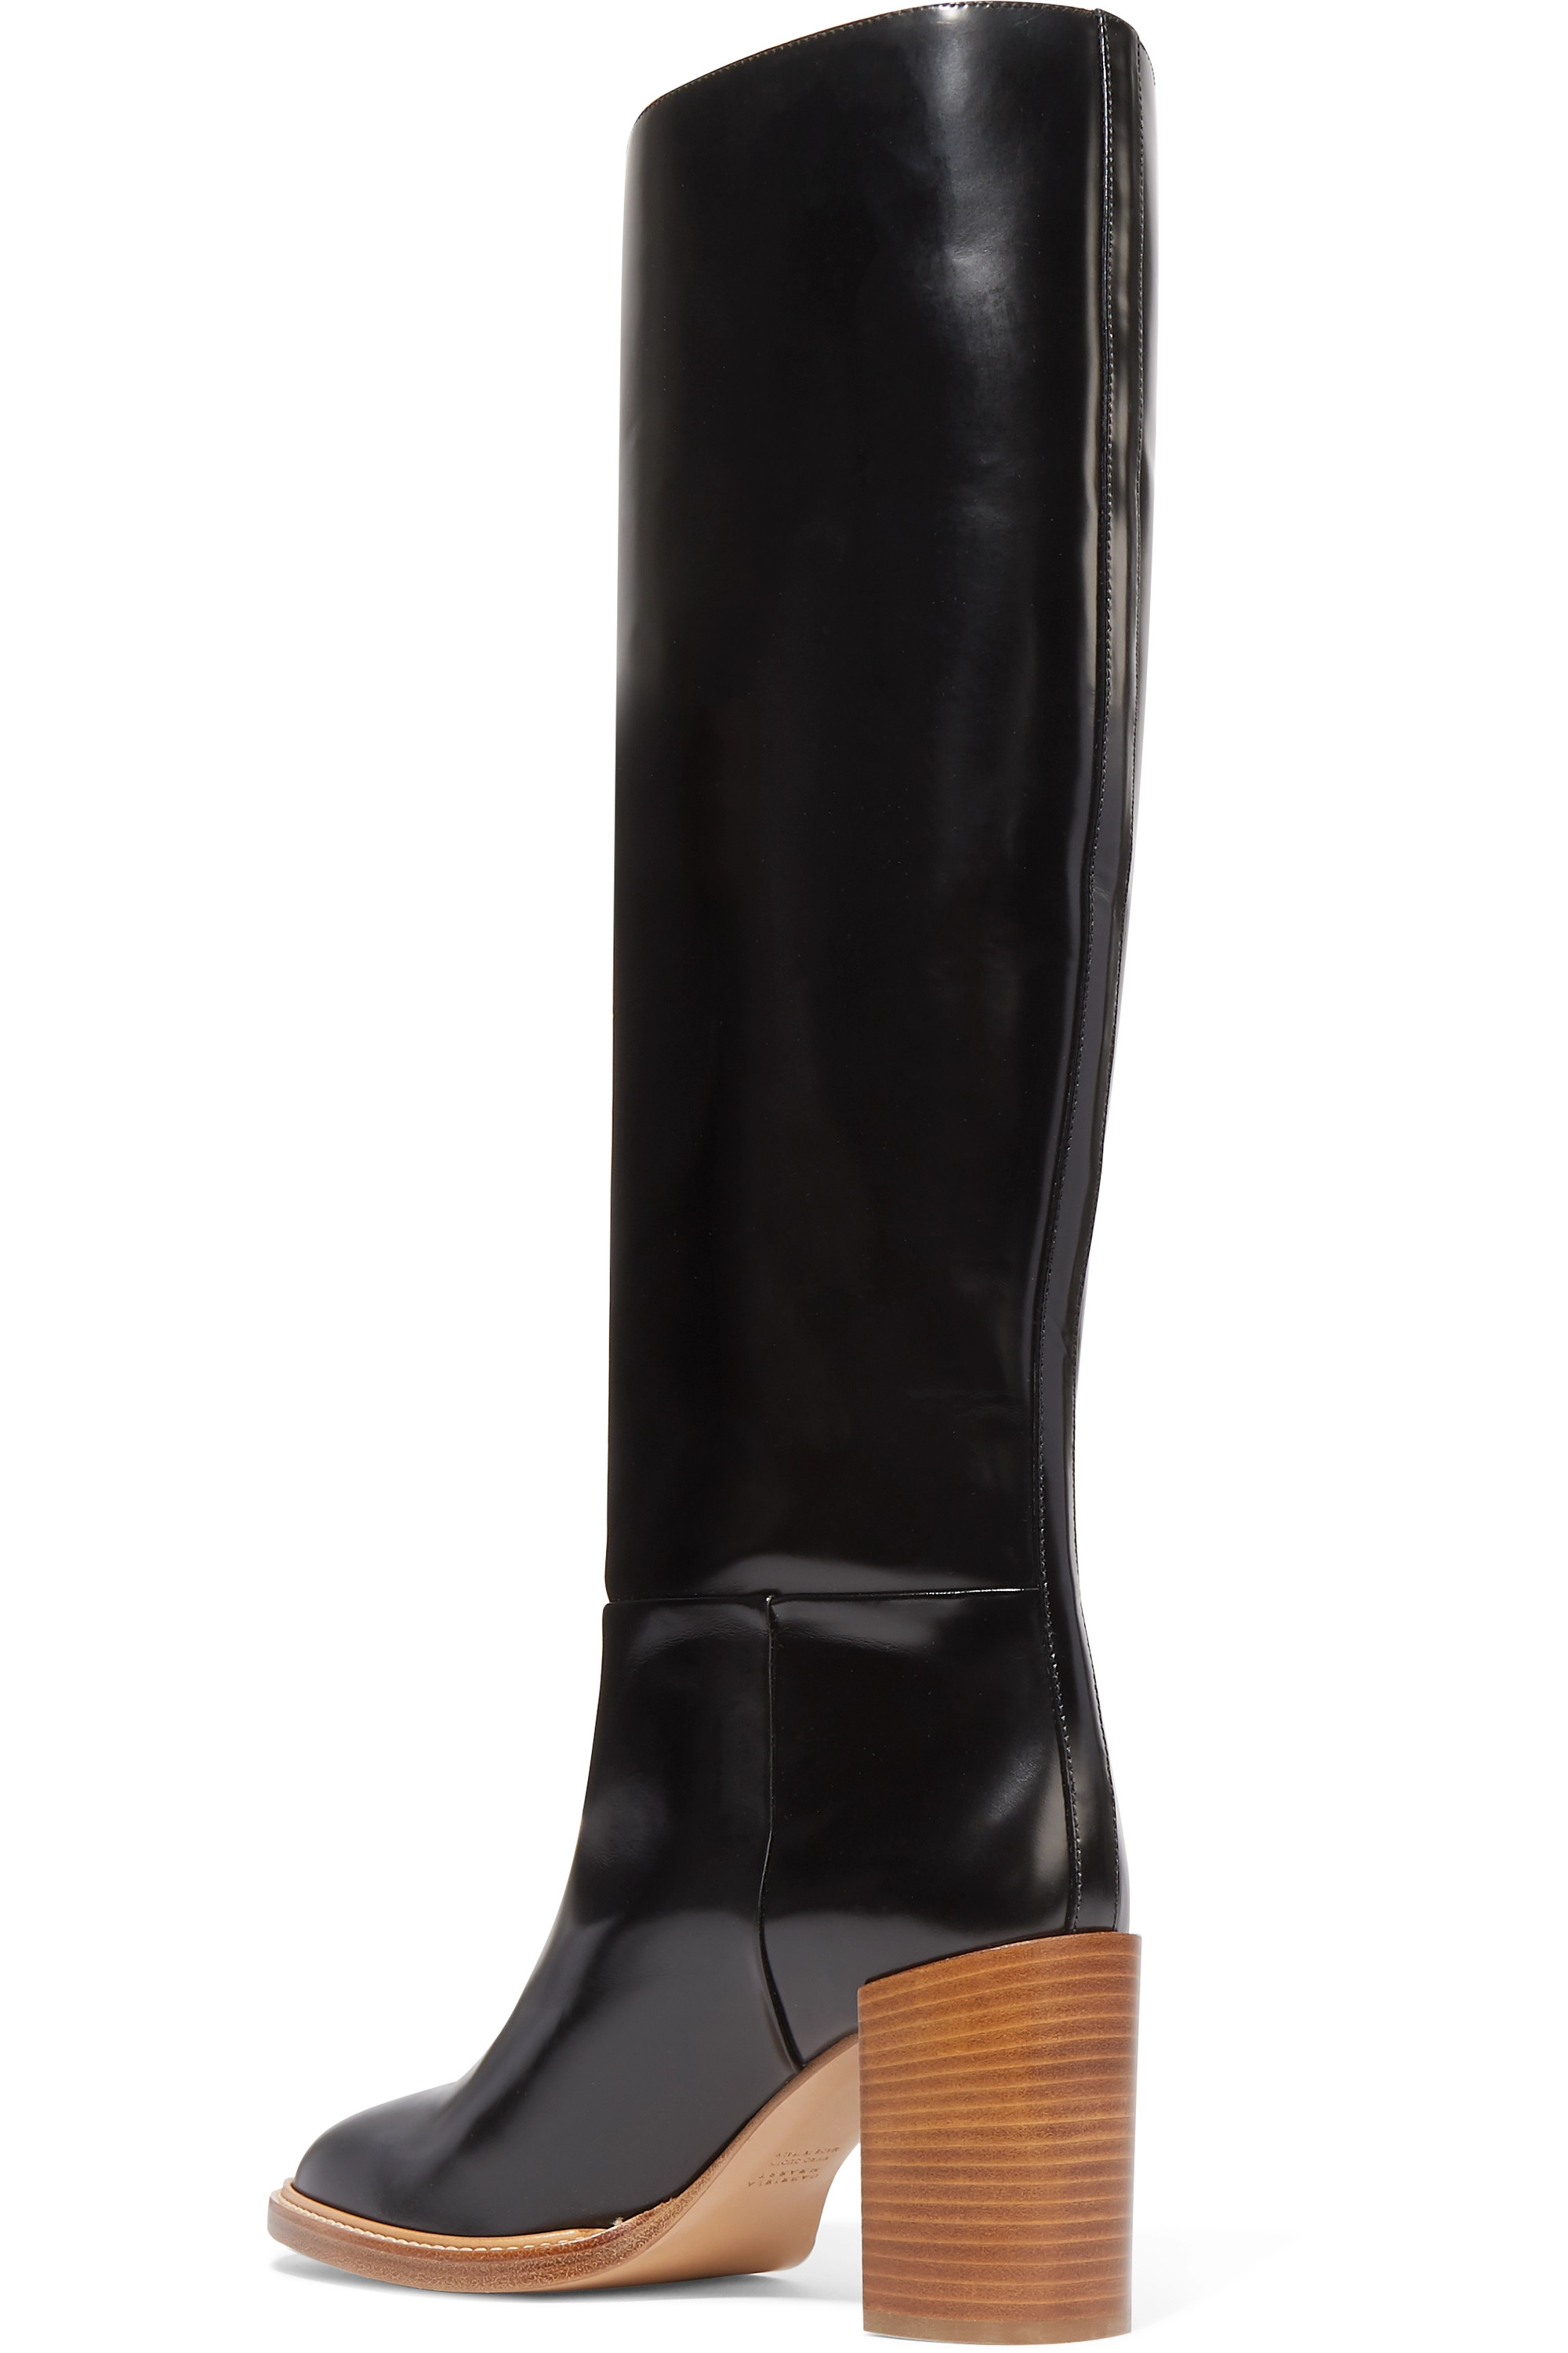 Gabriela Hearst Bocca leather knee boots